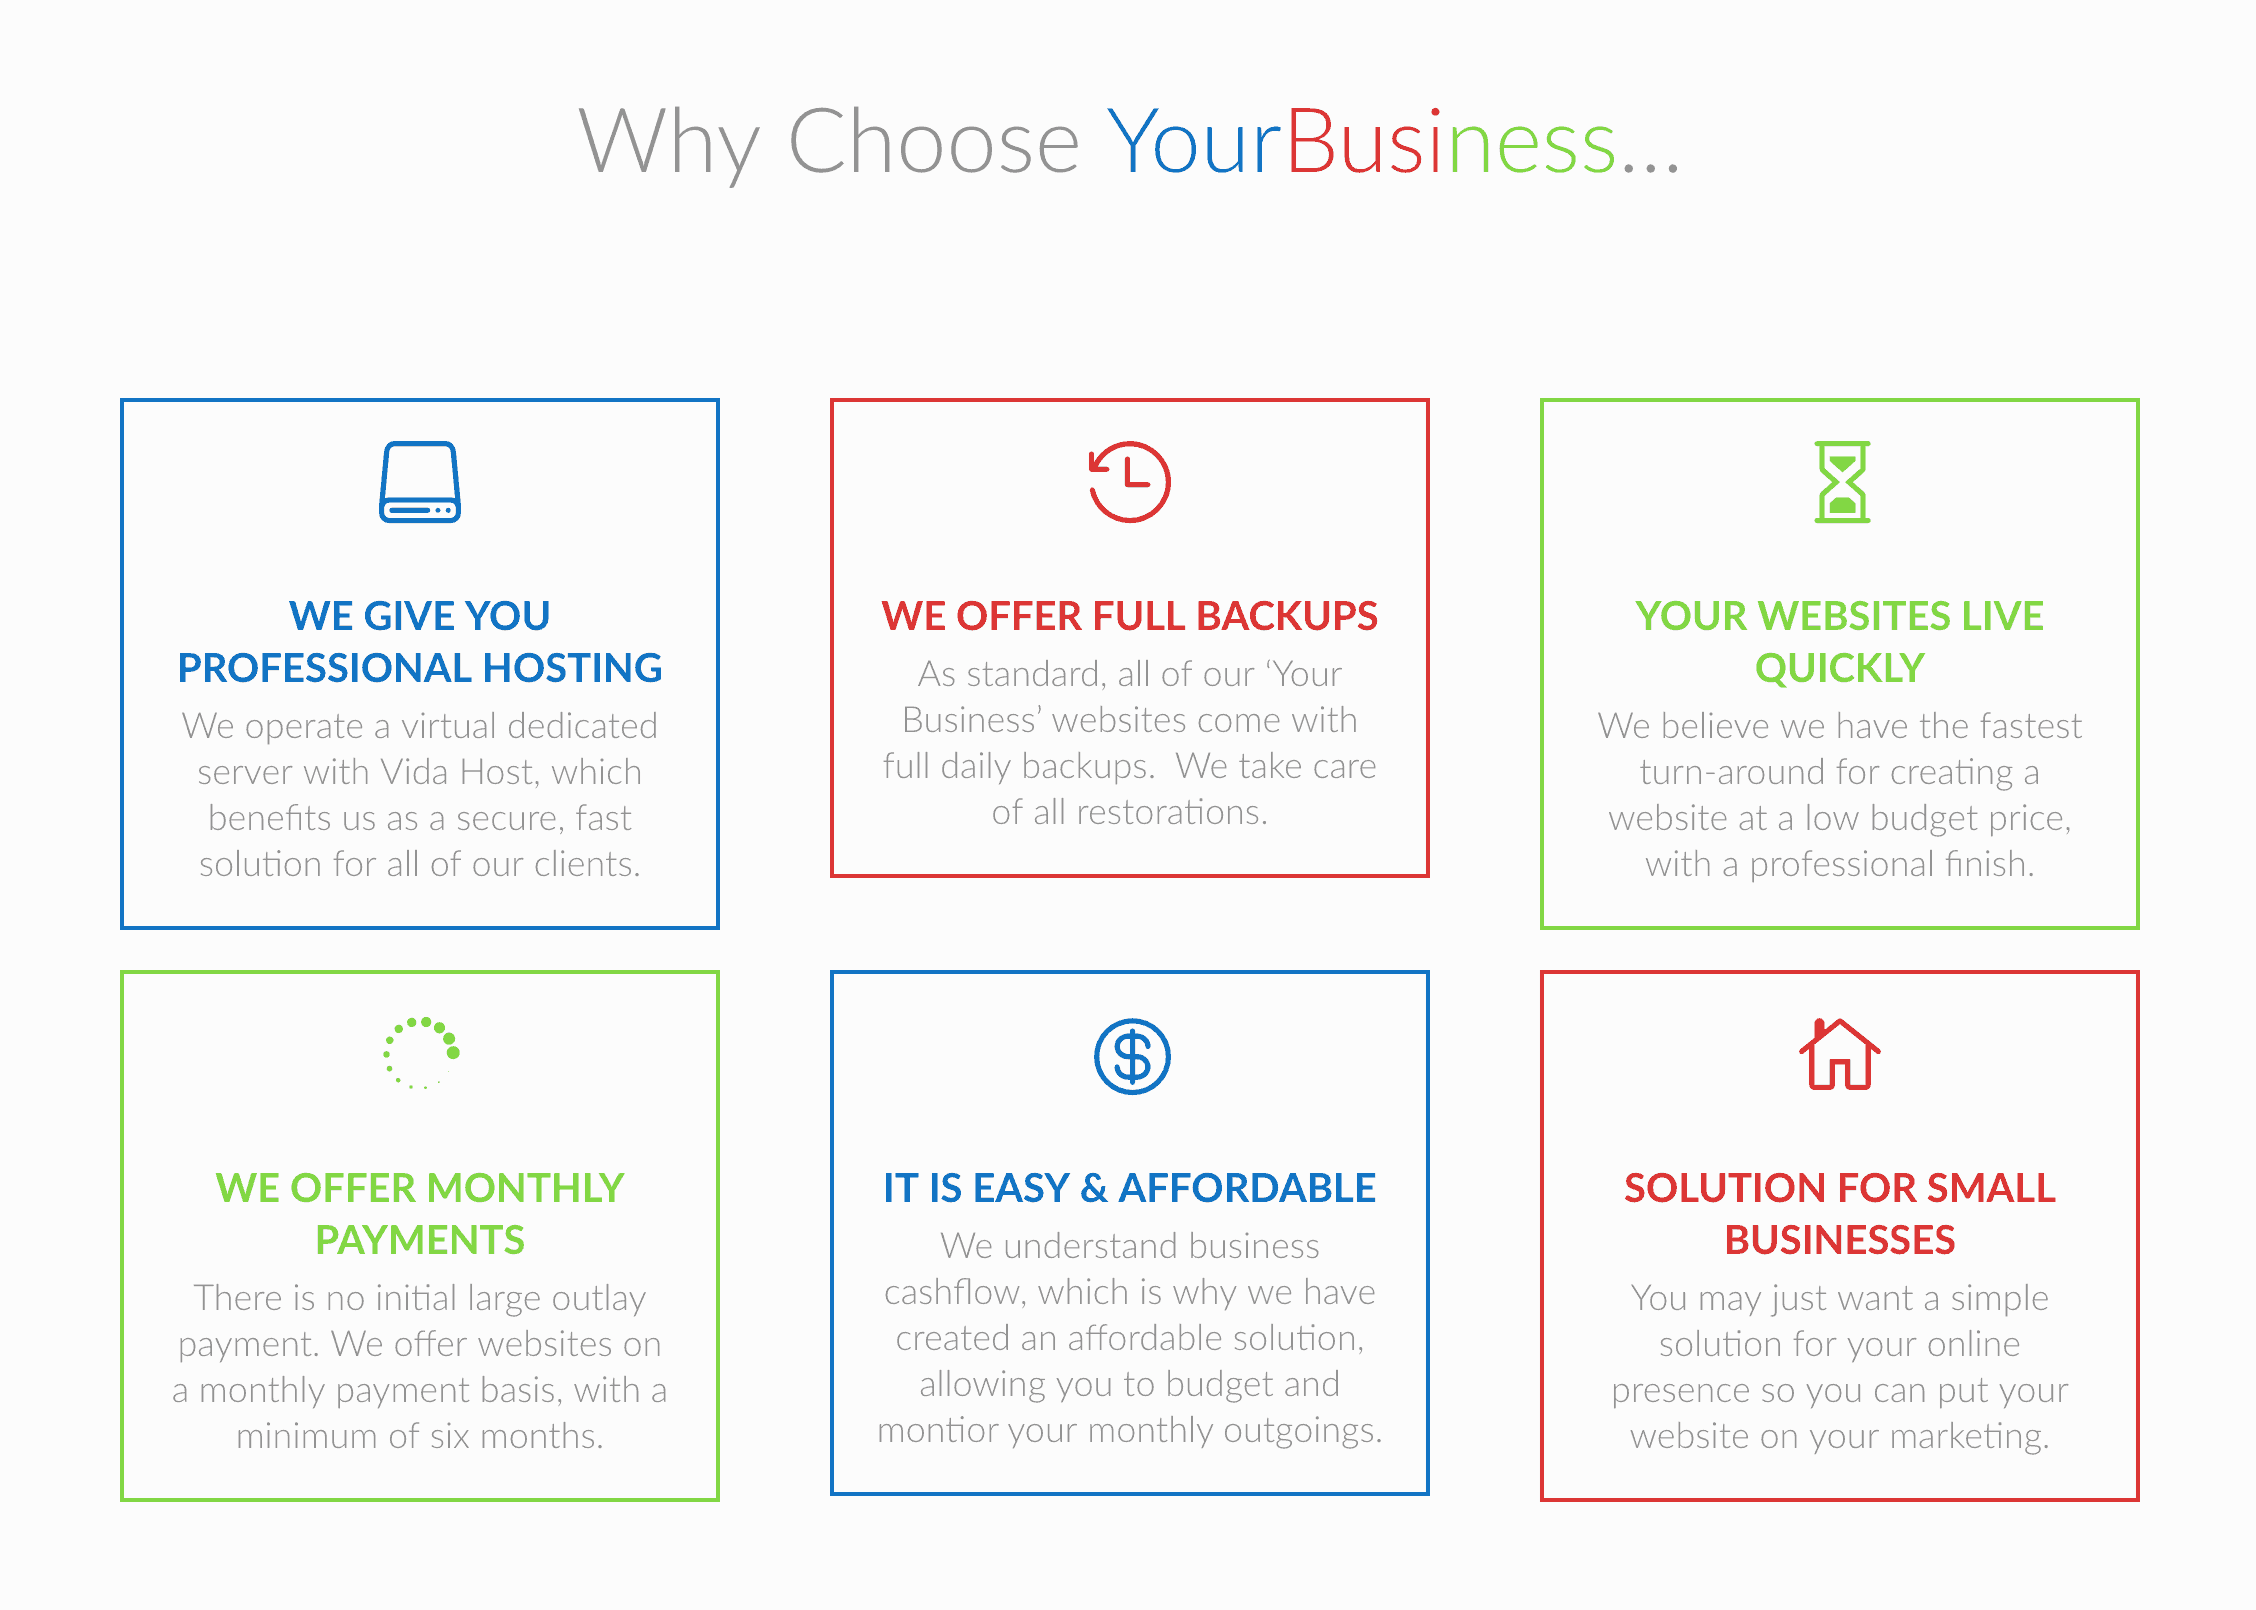 6 reasons to Choose Your Business